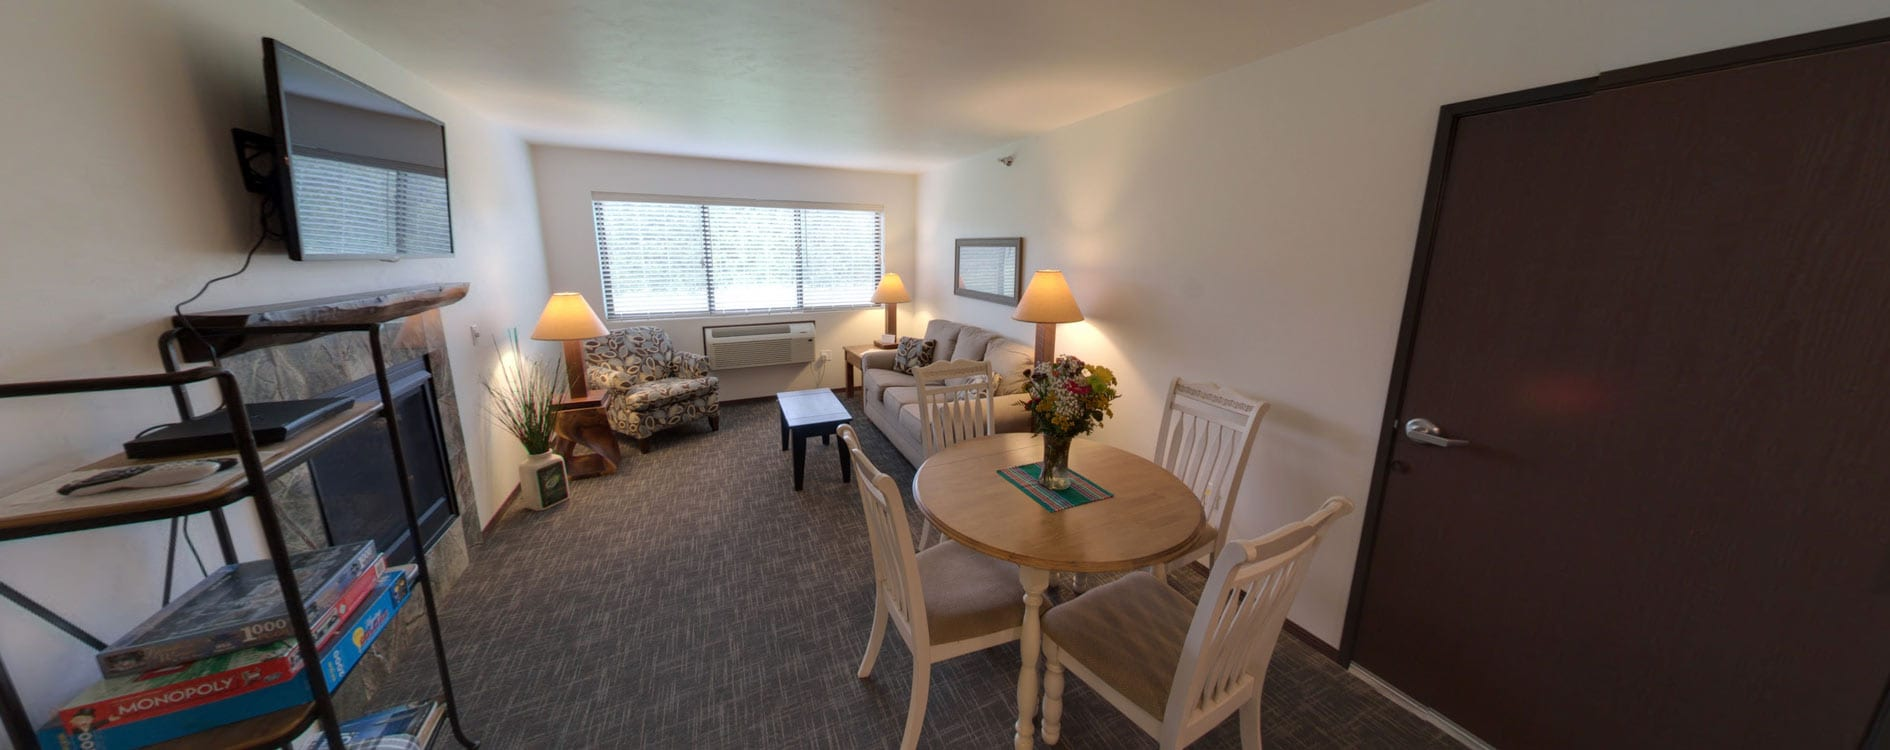 1 Bedroom Suite | Open Hearth Lodge Door County